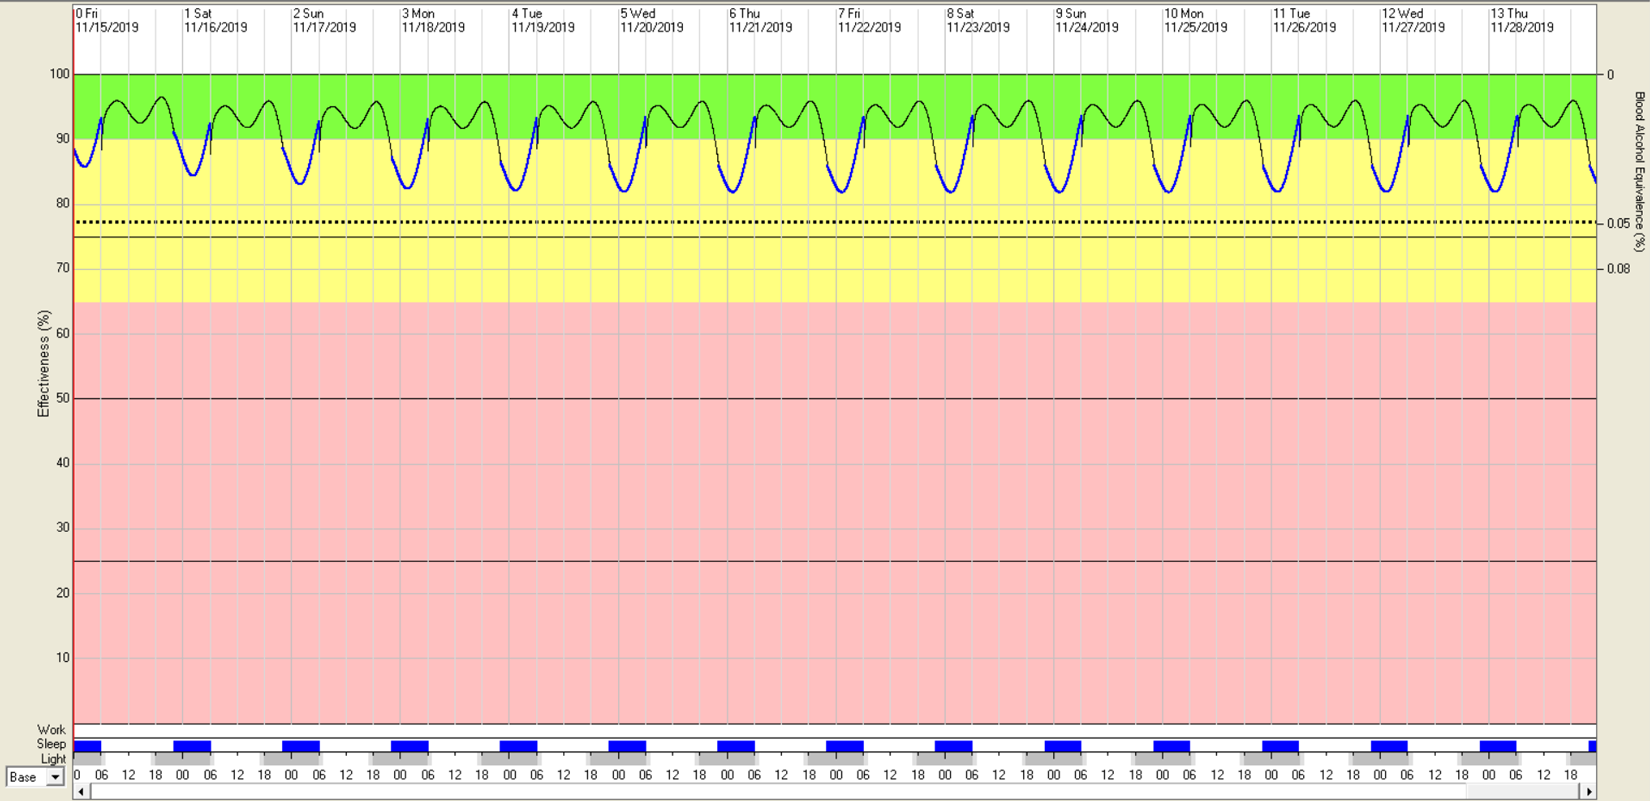 FAST graph example showing how 8 hours of sleep affects effectiveness